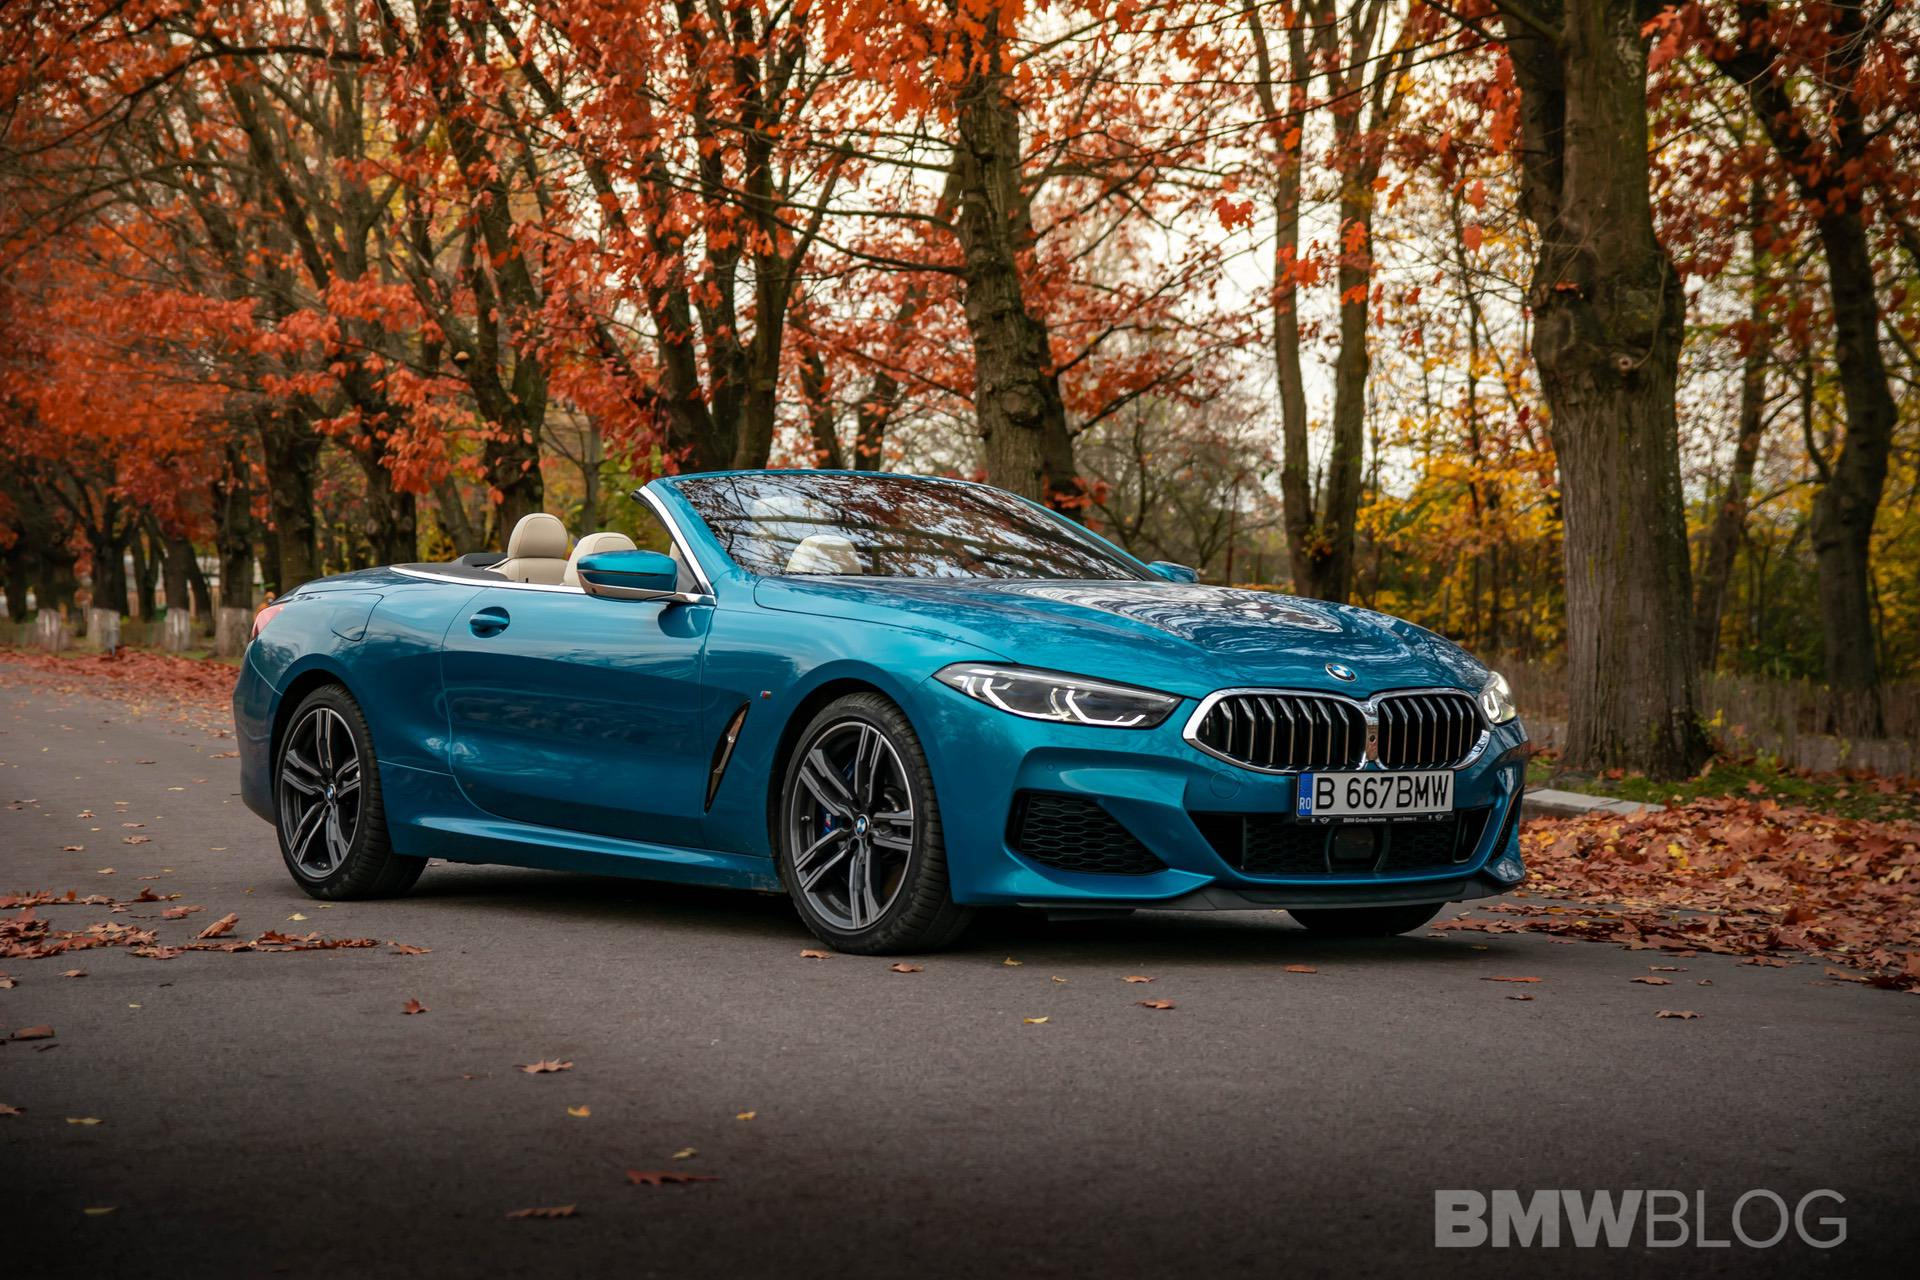 2020 BMW M850i Convertible atlantis blue45